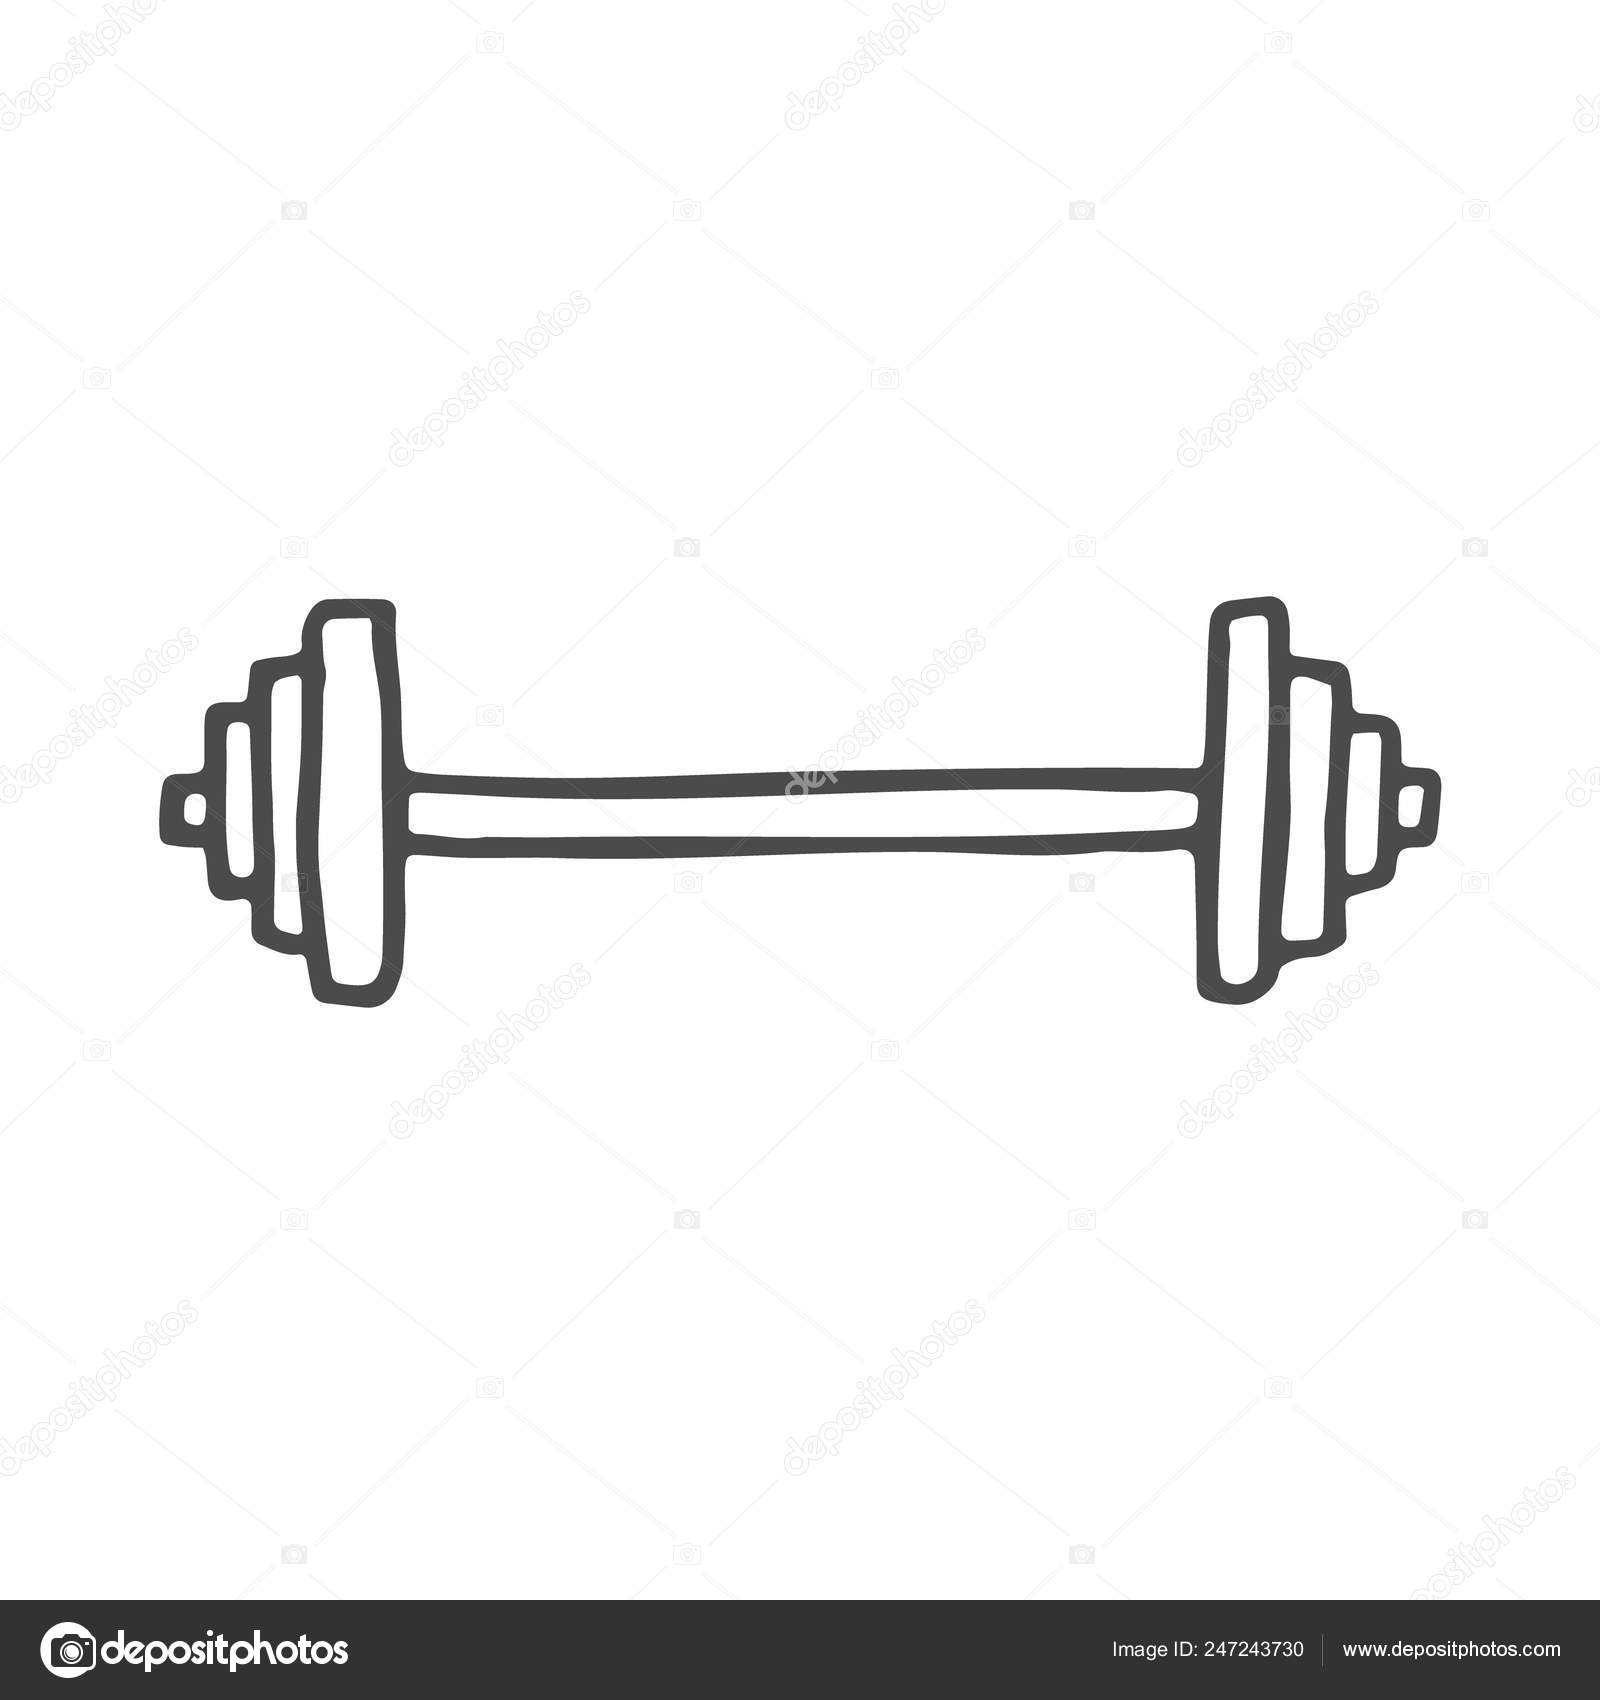 freehand drawn cartoon barbell